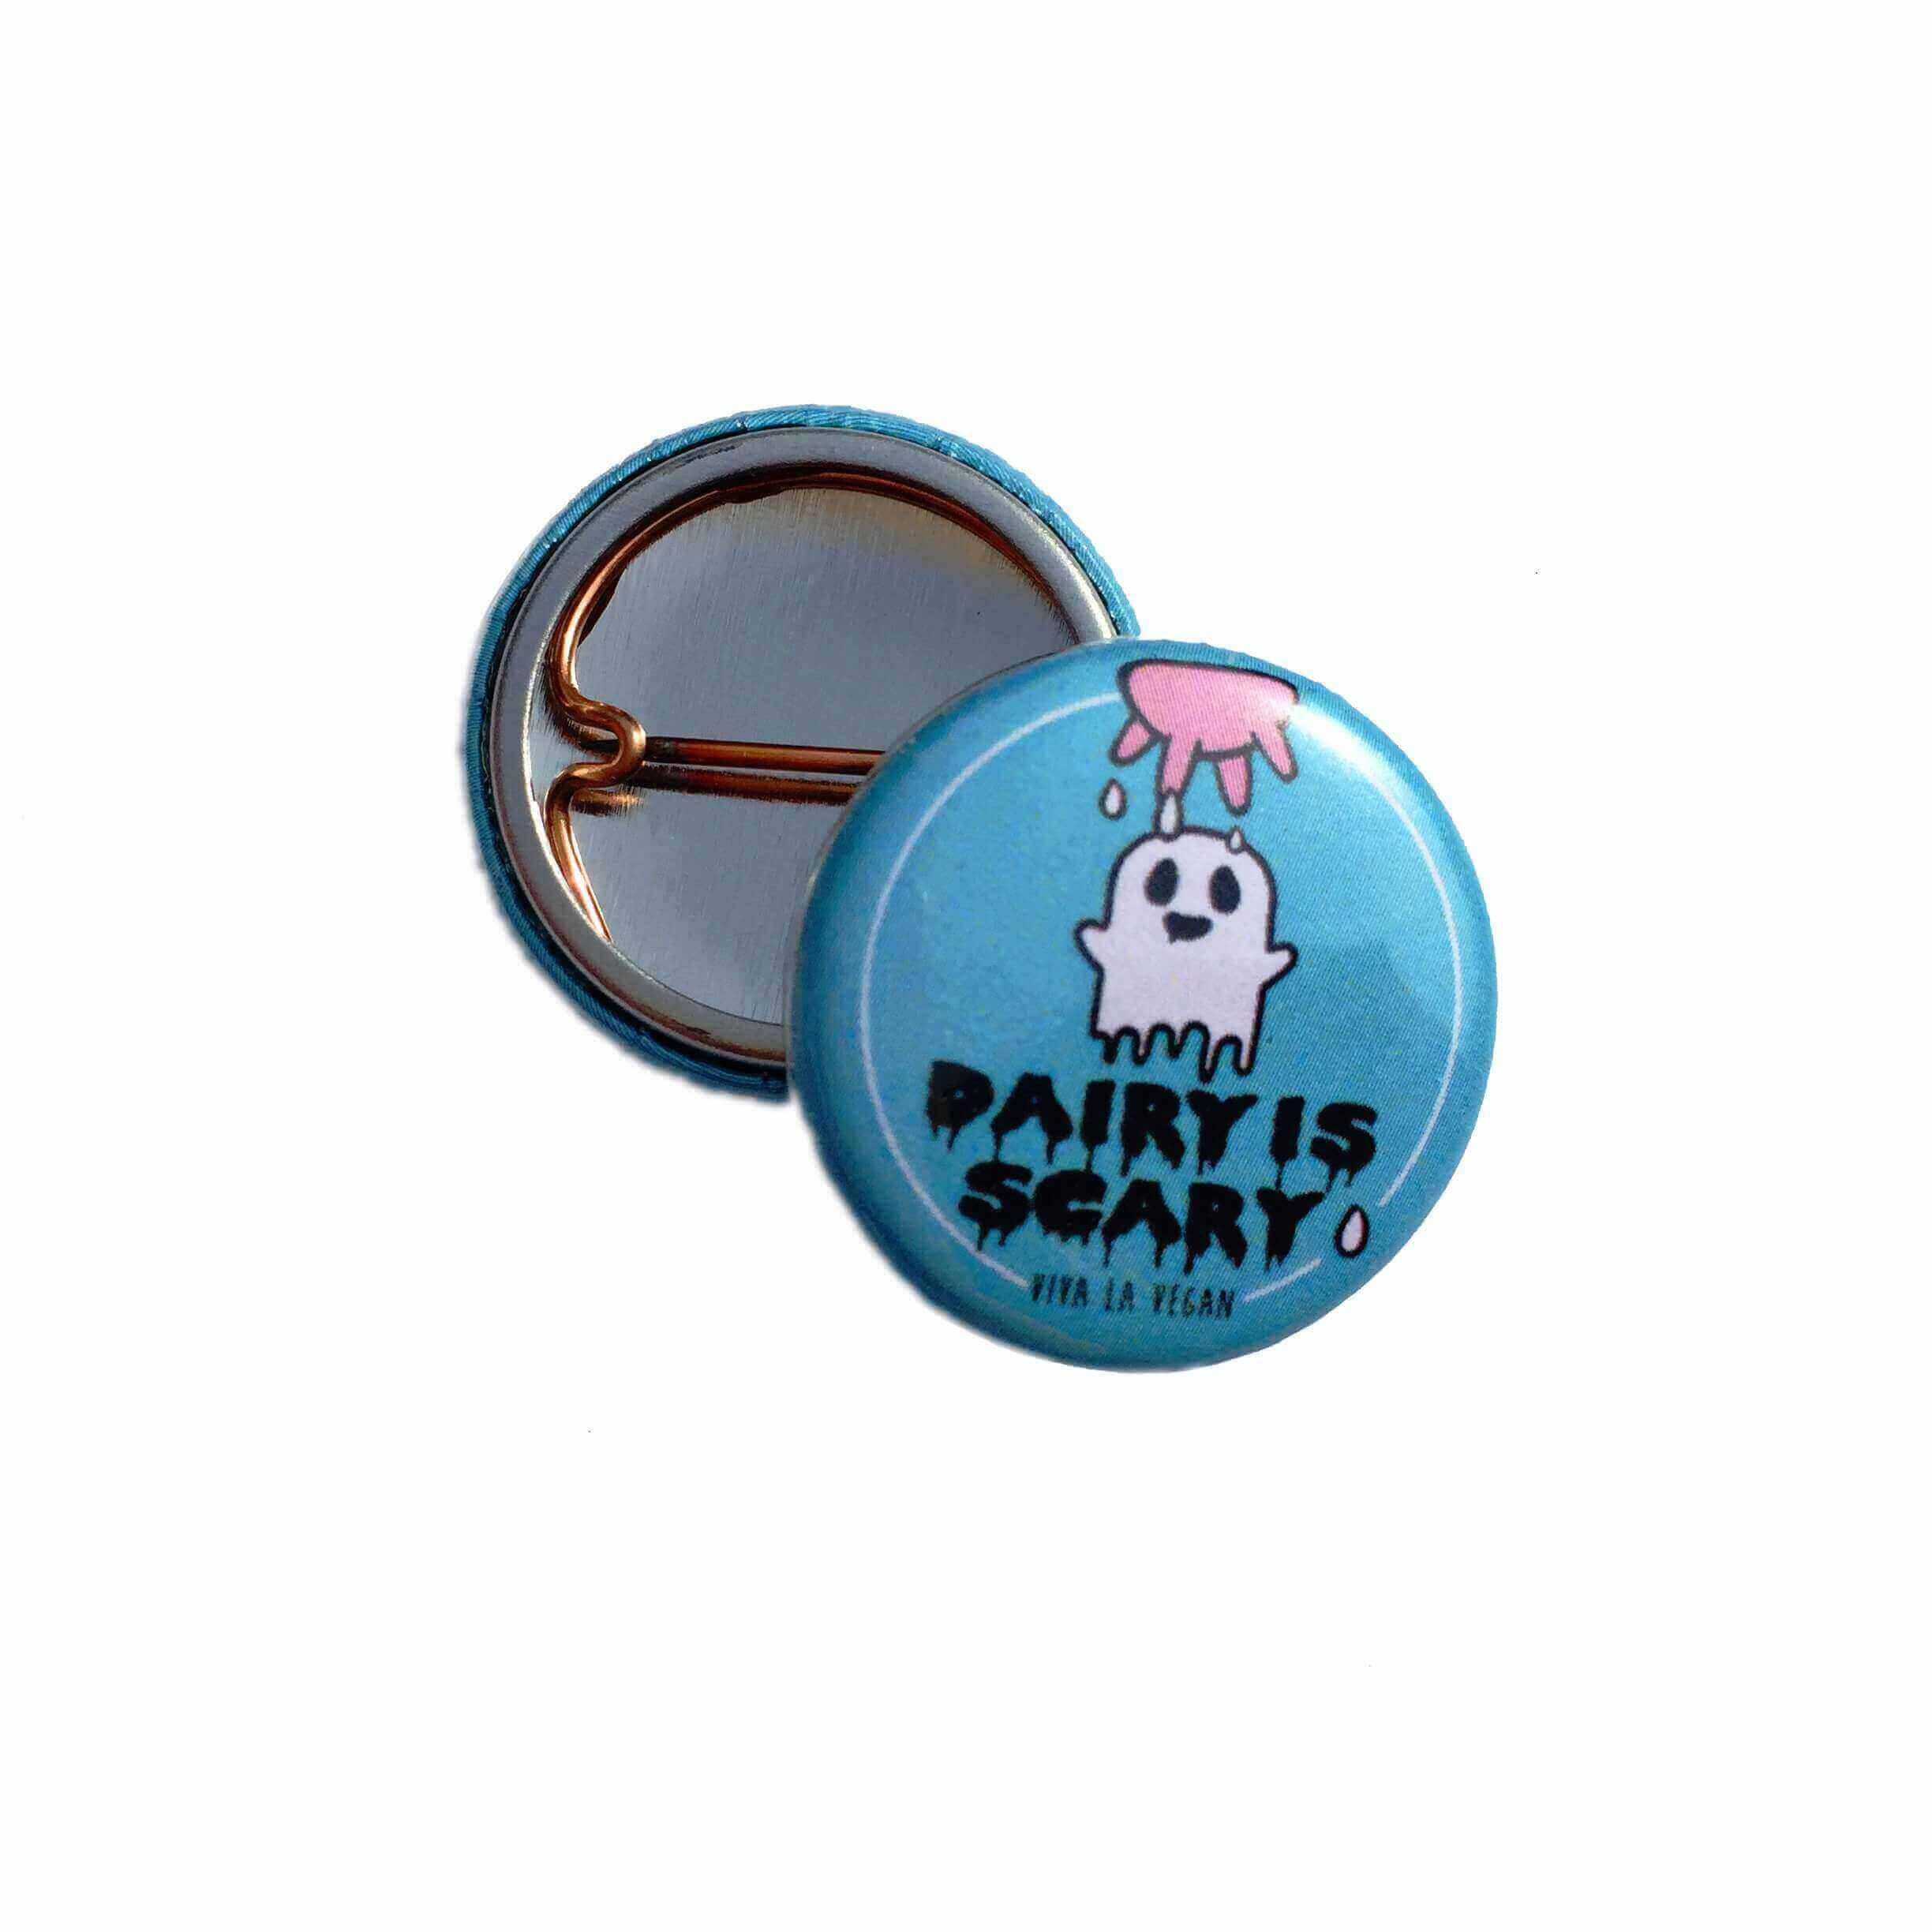 25 mm Statement Badge: Dairy is Scary Ghost